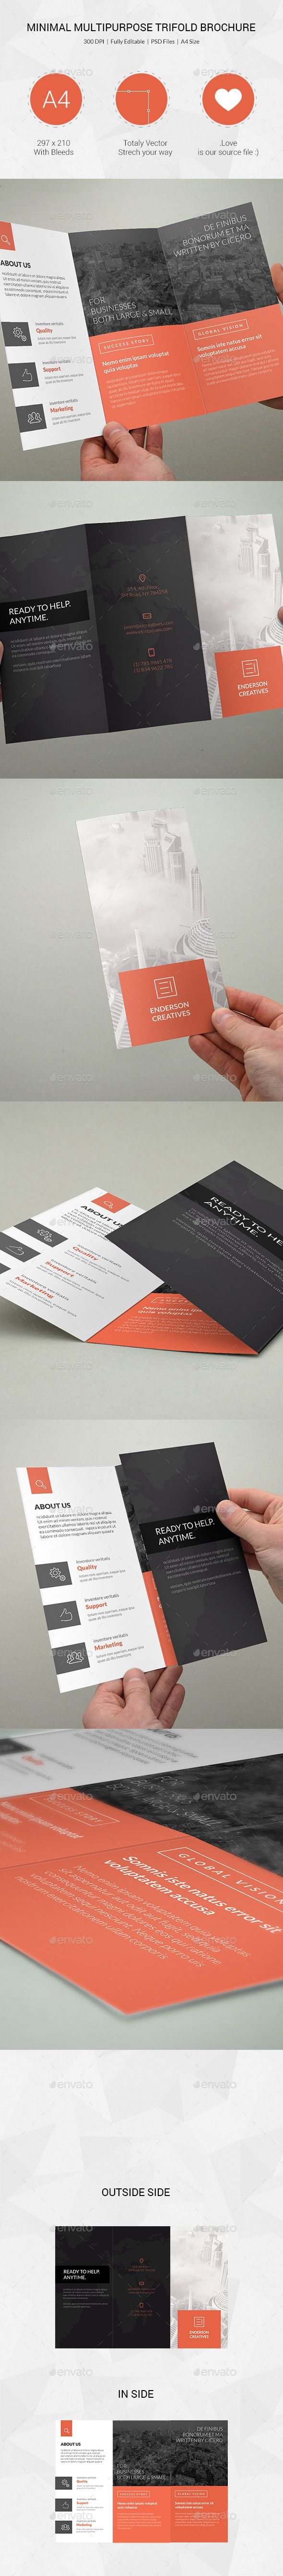 Minimal Multipurpose Trifold Brochure Template #design Download: http://graphicriver.net/item/minimal-multipurpose-trifold-brochure-09/11885113?ref=ksioks